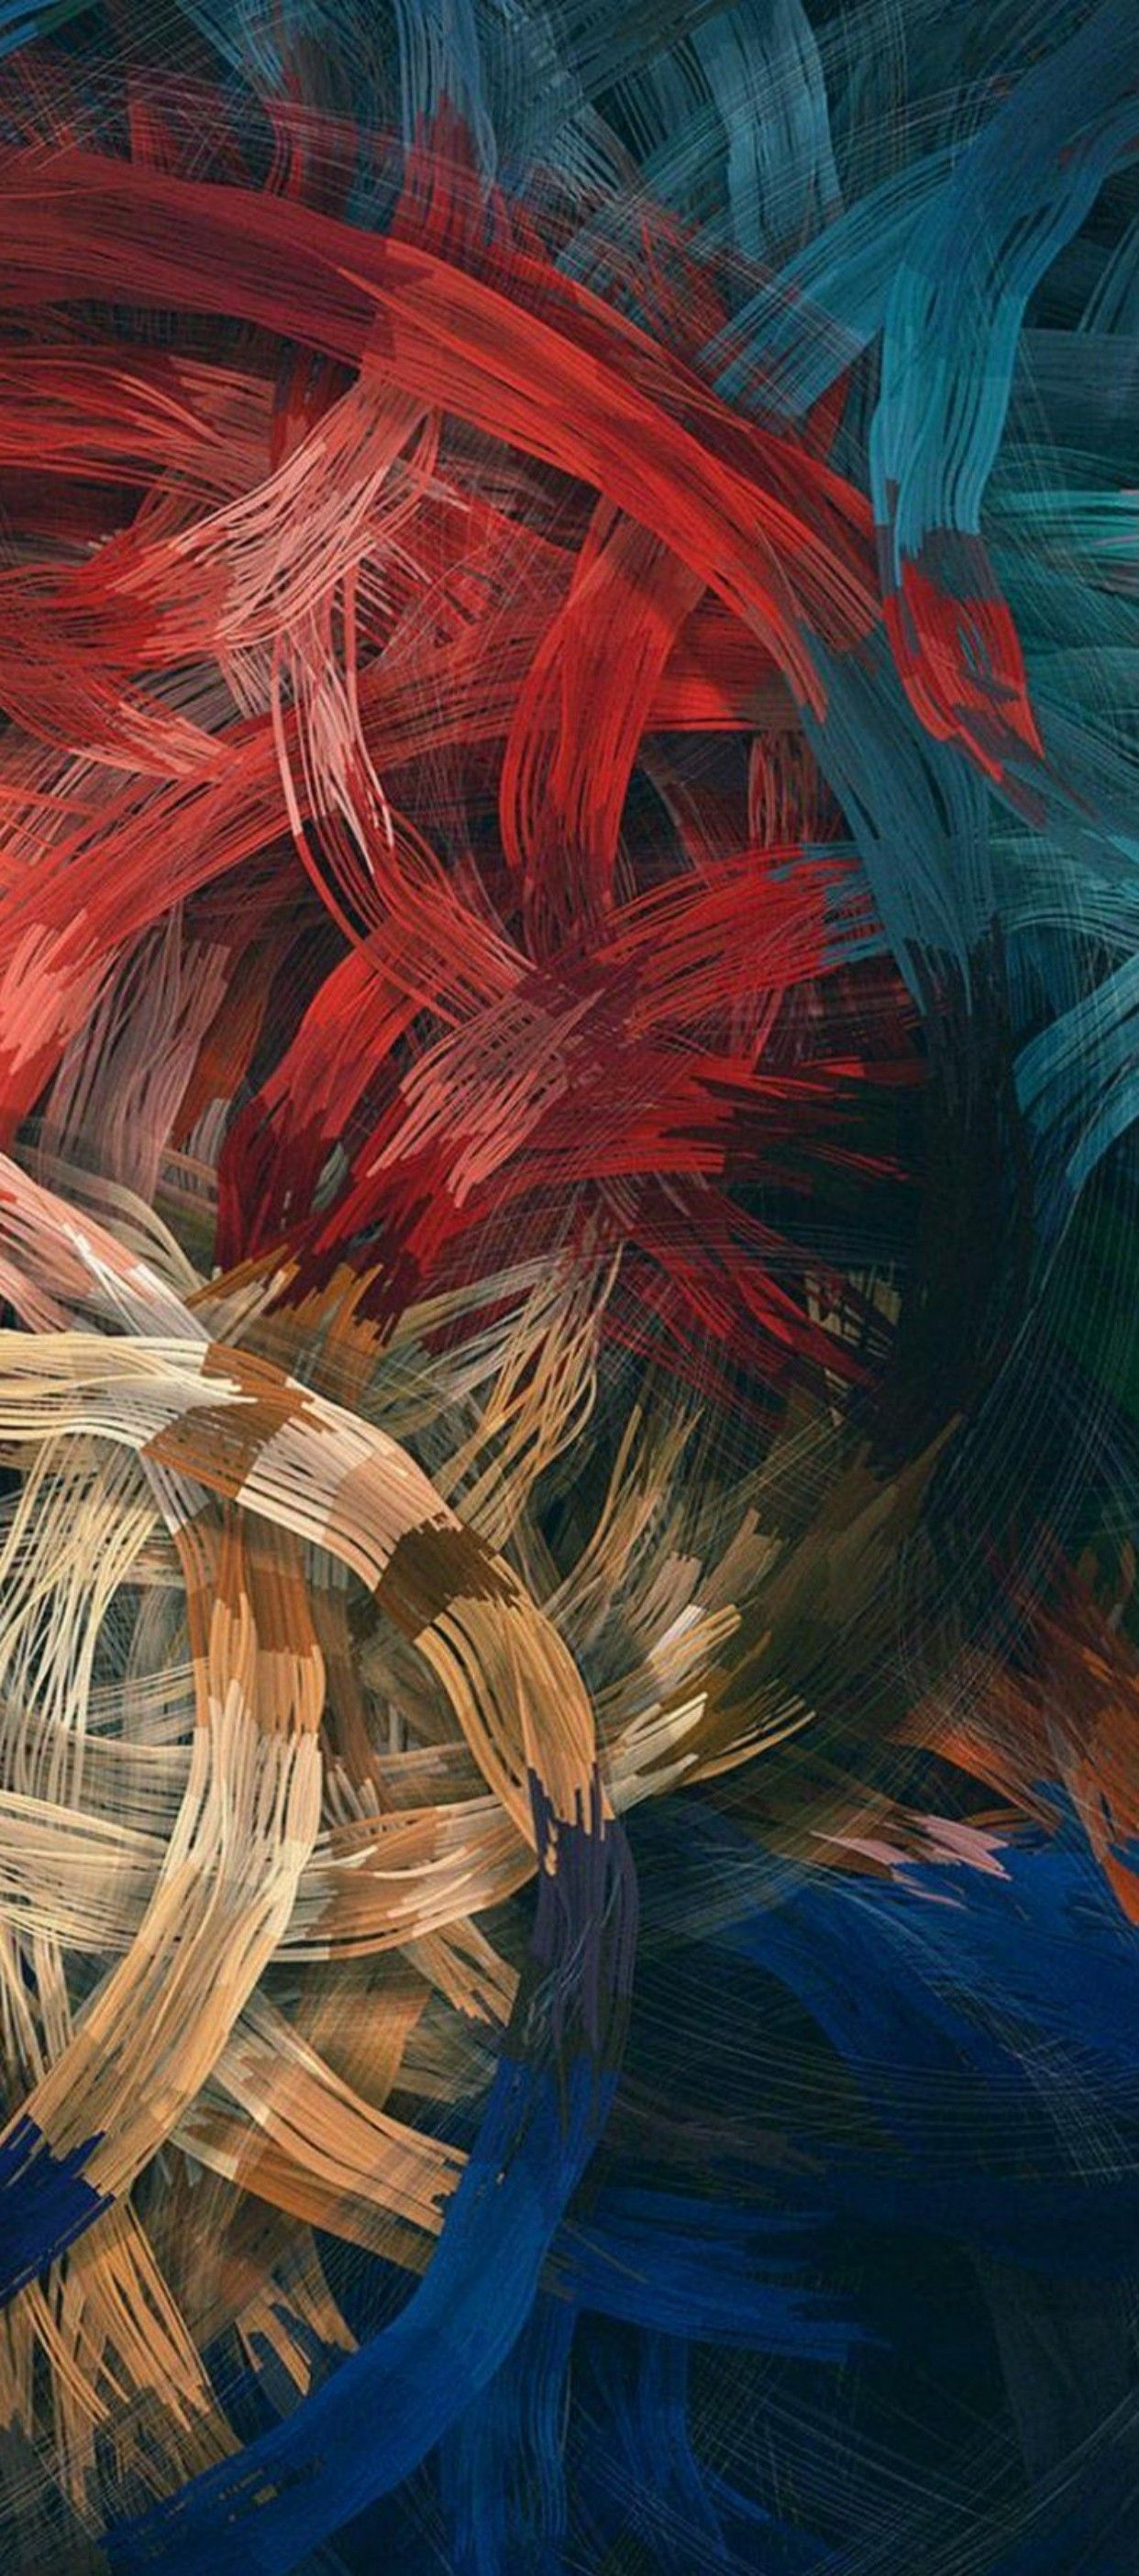 Brush Strokes Red Orange Blue Wallpaper Clean Galaxy Colour Abstract Digital Art Abstract Iphone Wallpaper Oneplus Wallpapers Samsung Galaxy Wallpaper